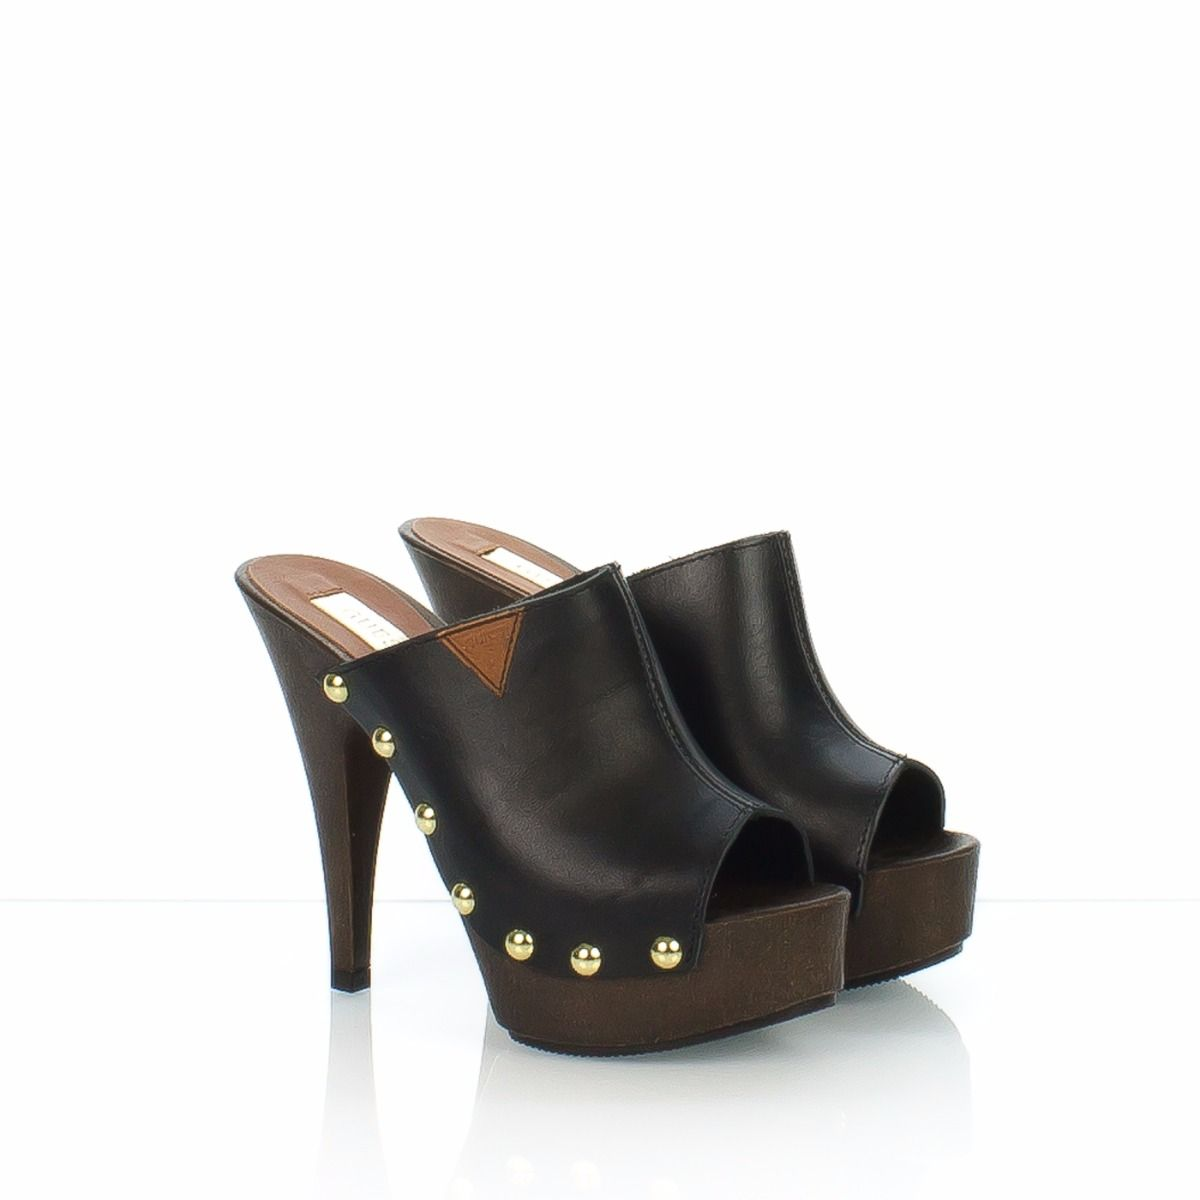 Donna Nero Guess Zoccolo Pelle Klo2 vNnwOm0y8P